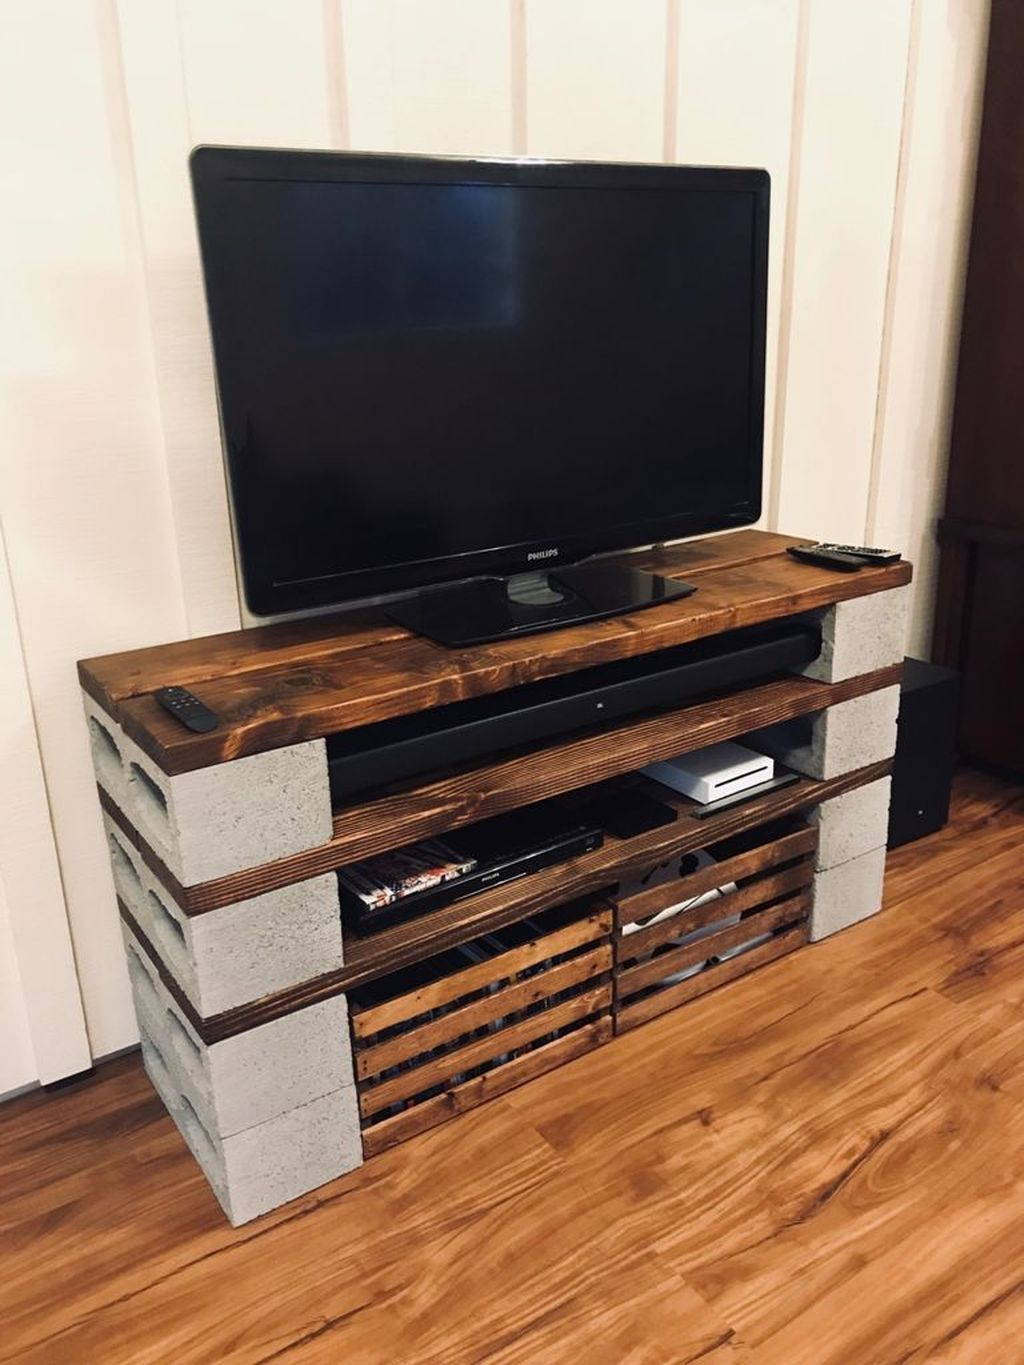 Awesome 44 Nice Shelves Entertainment Center Design Ideas More At Https Homyfeed Co Diy Furniture Tv Stand Cinder Block Furniture Home Entertainment Centers